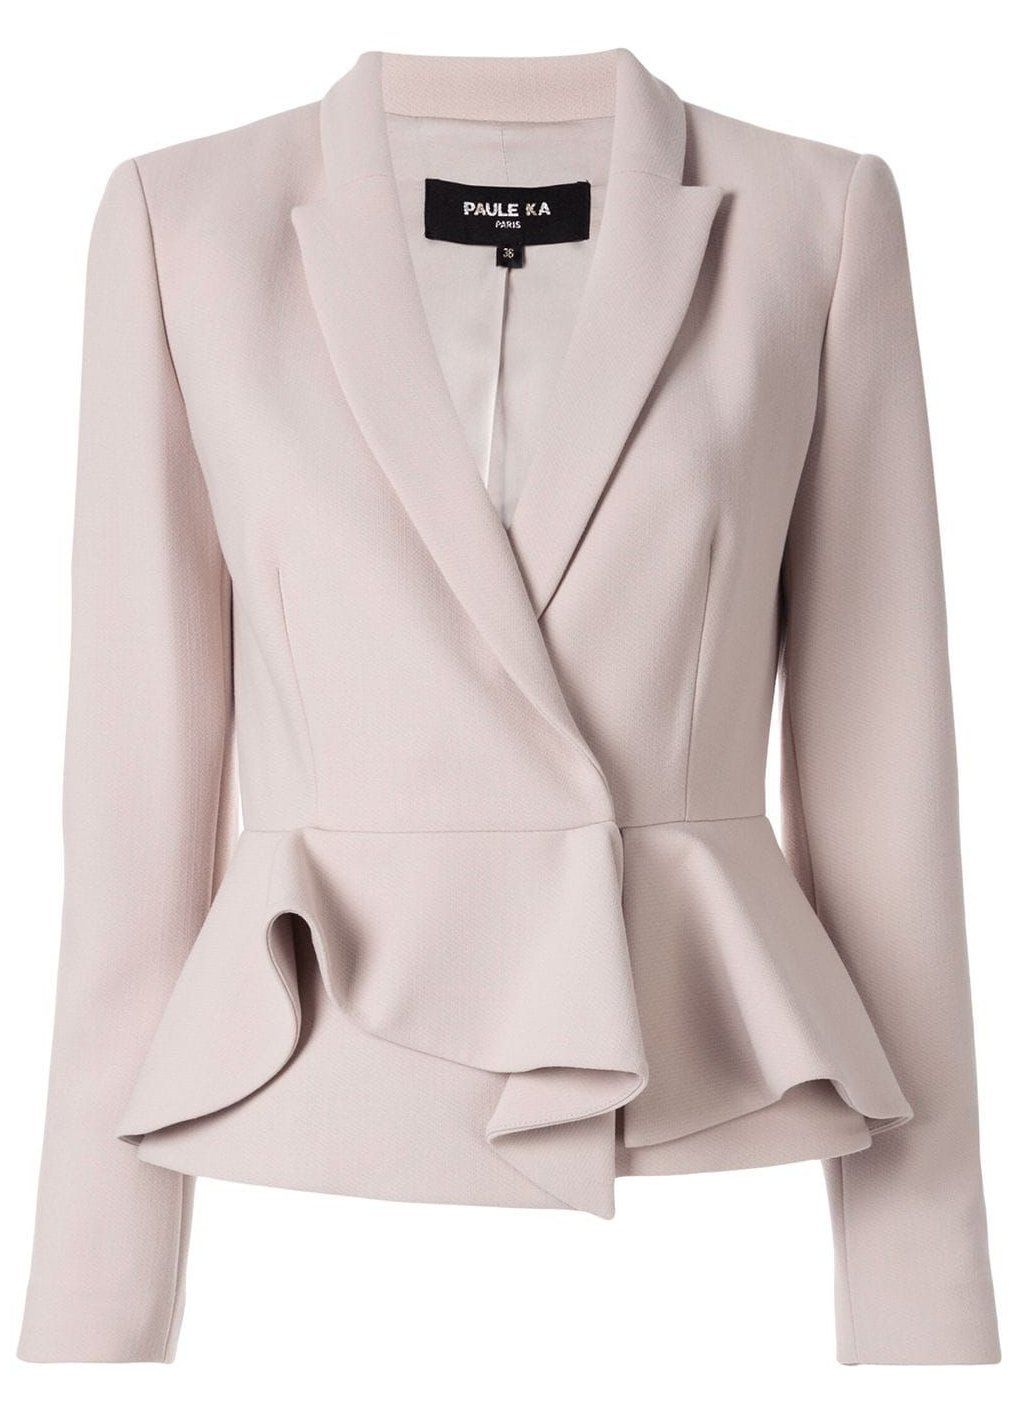 Photo of formal jackets for women